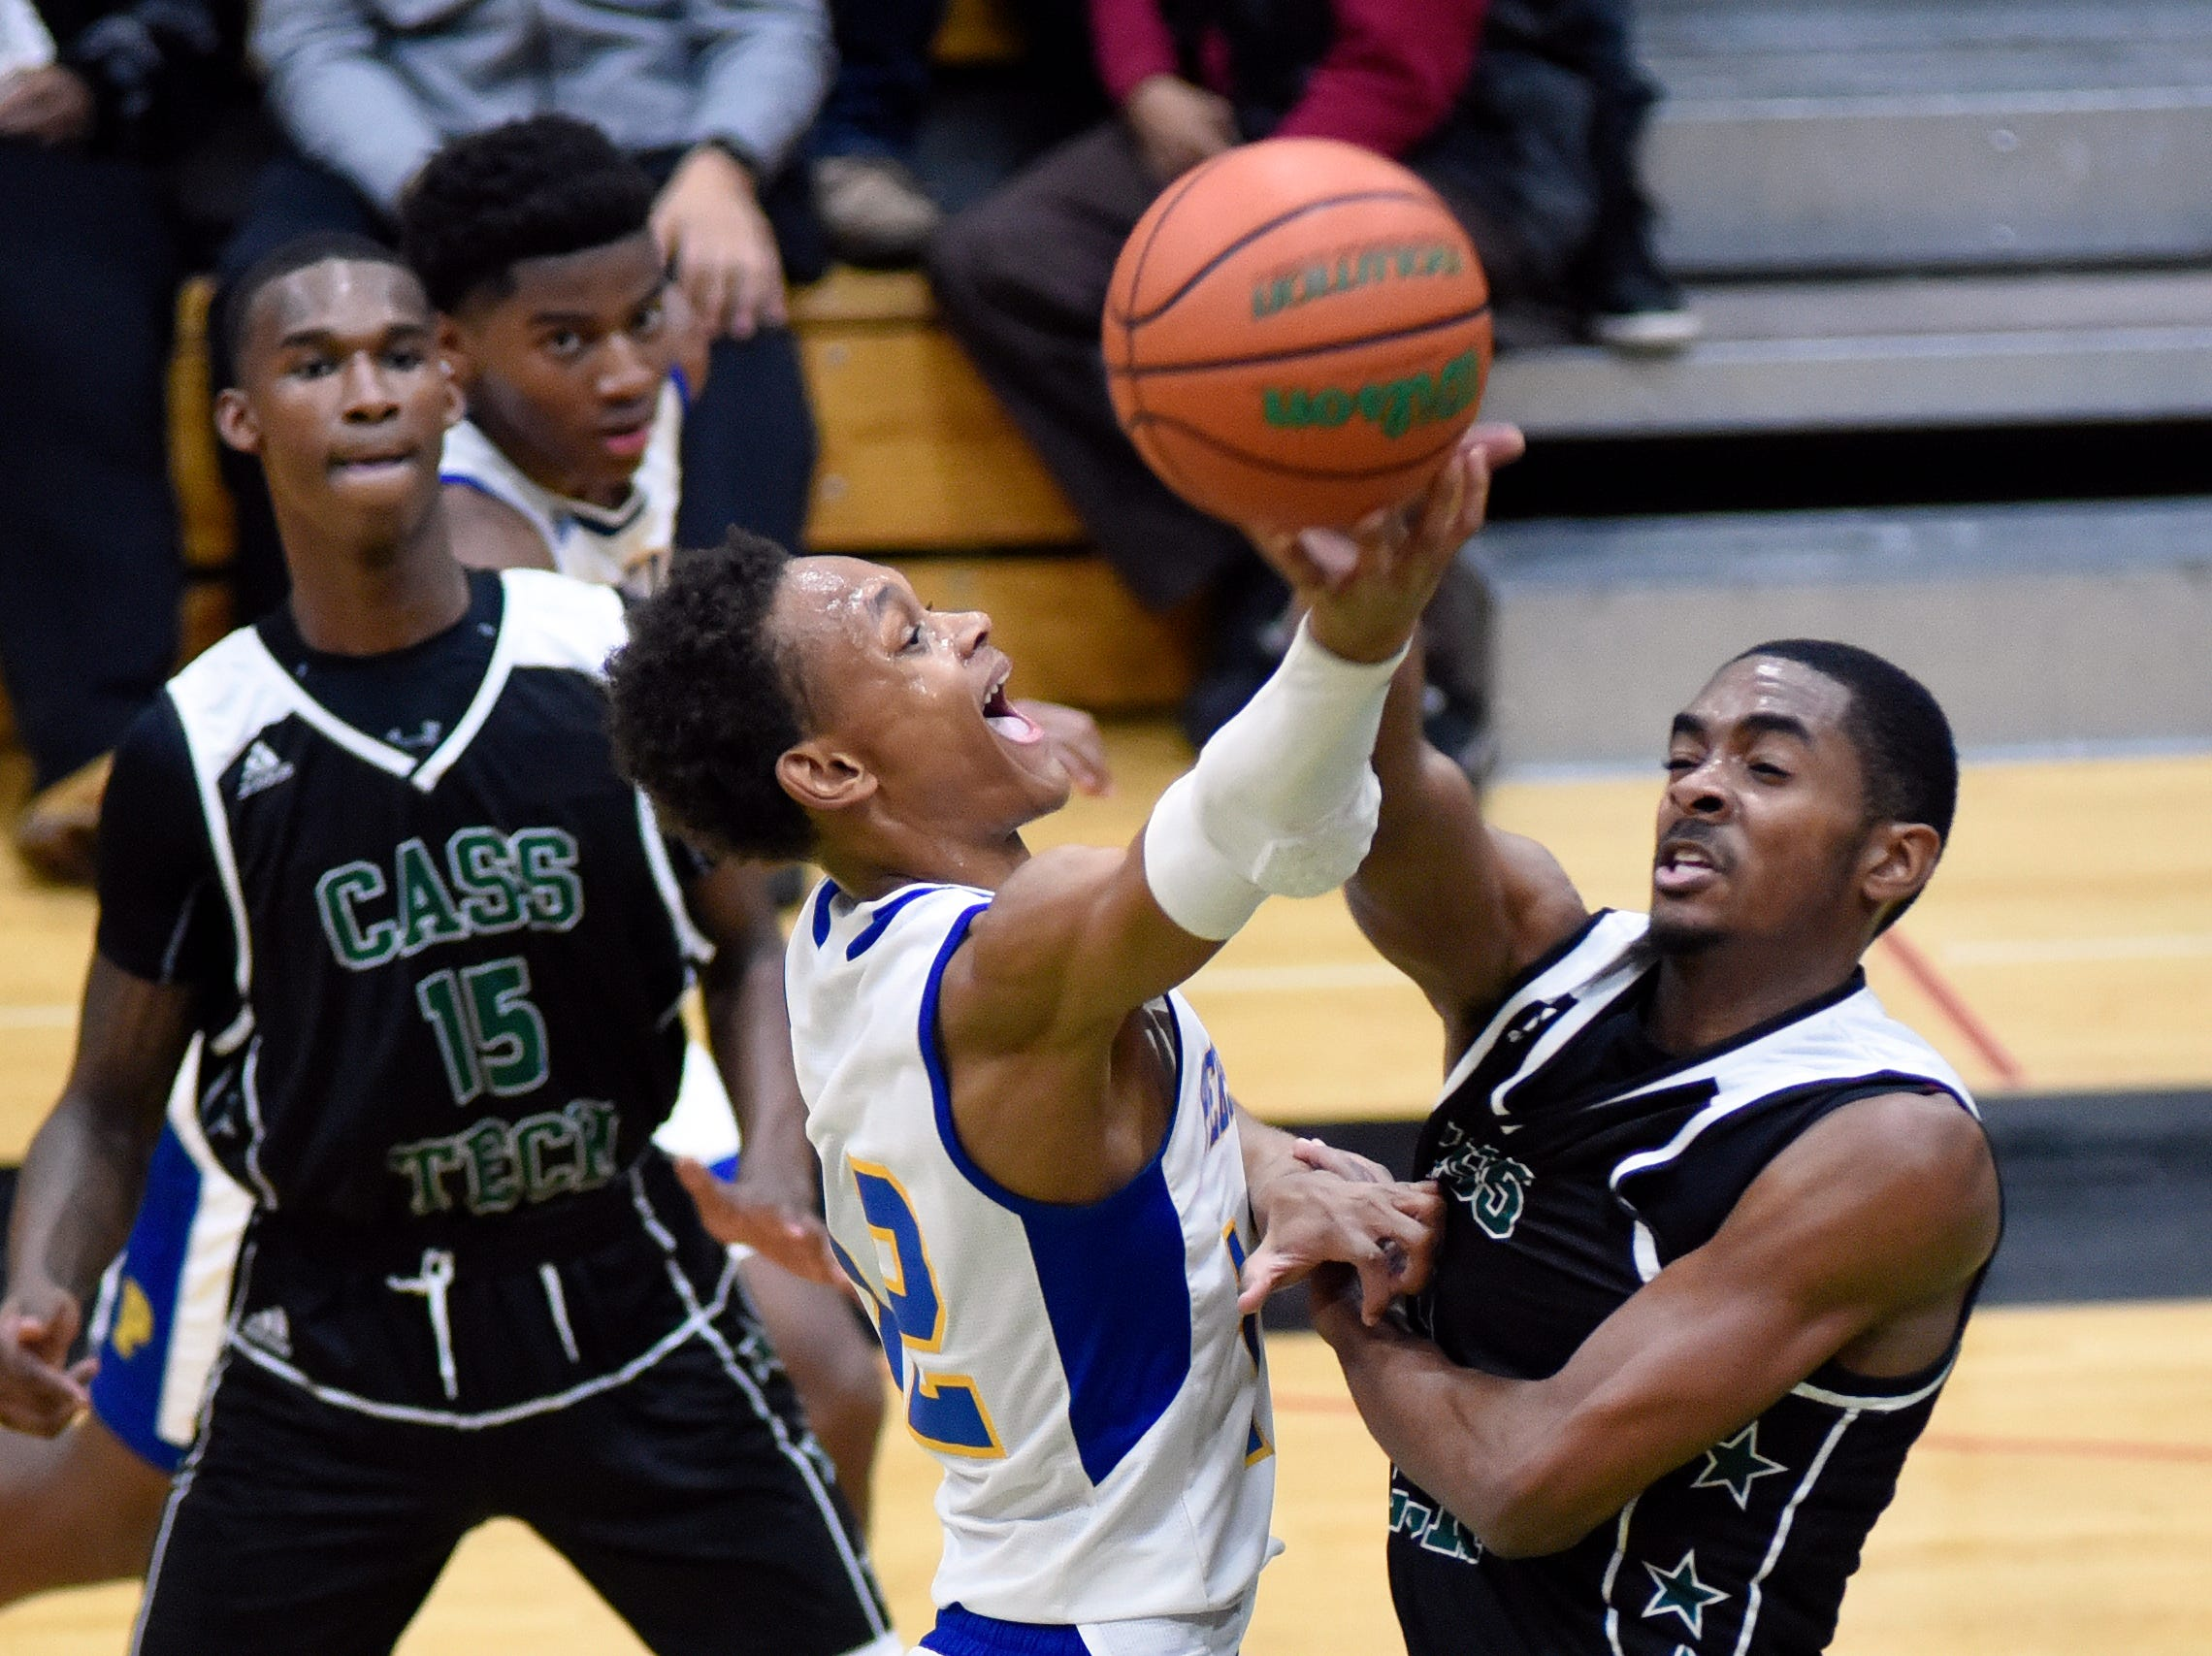 Cass Tech's Kalil Whitehead (23) blocks the shot of Detroit Pershing's Pierre Hill (12) during the second quarter.